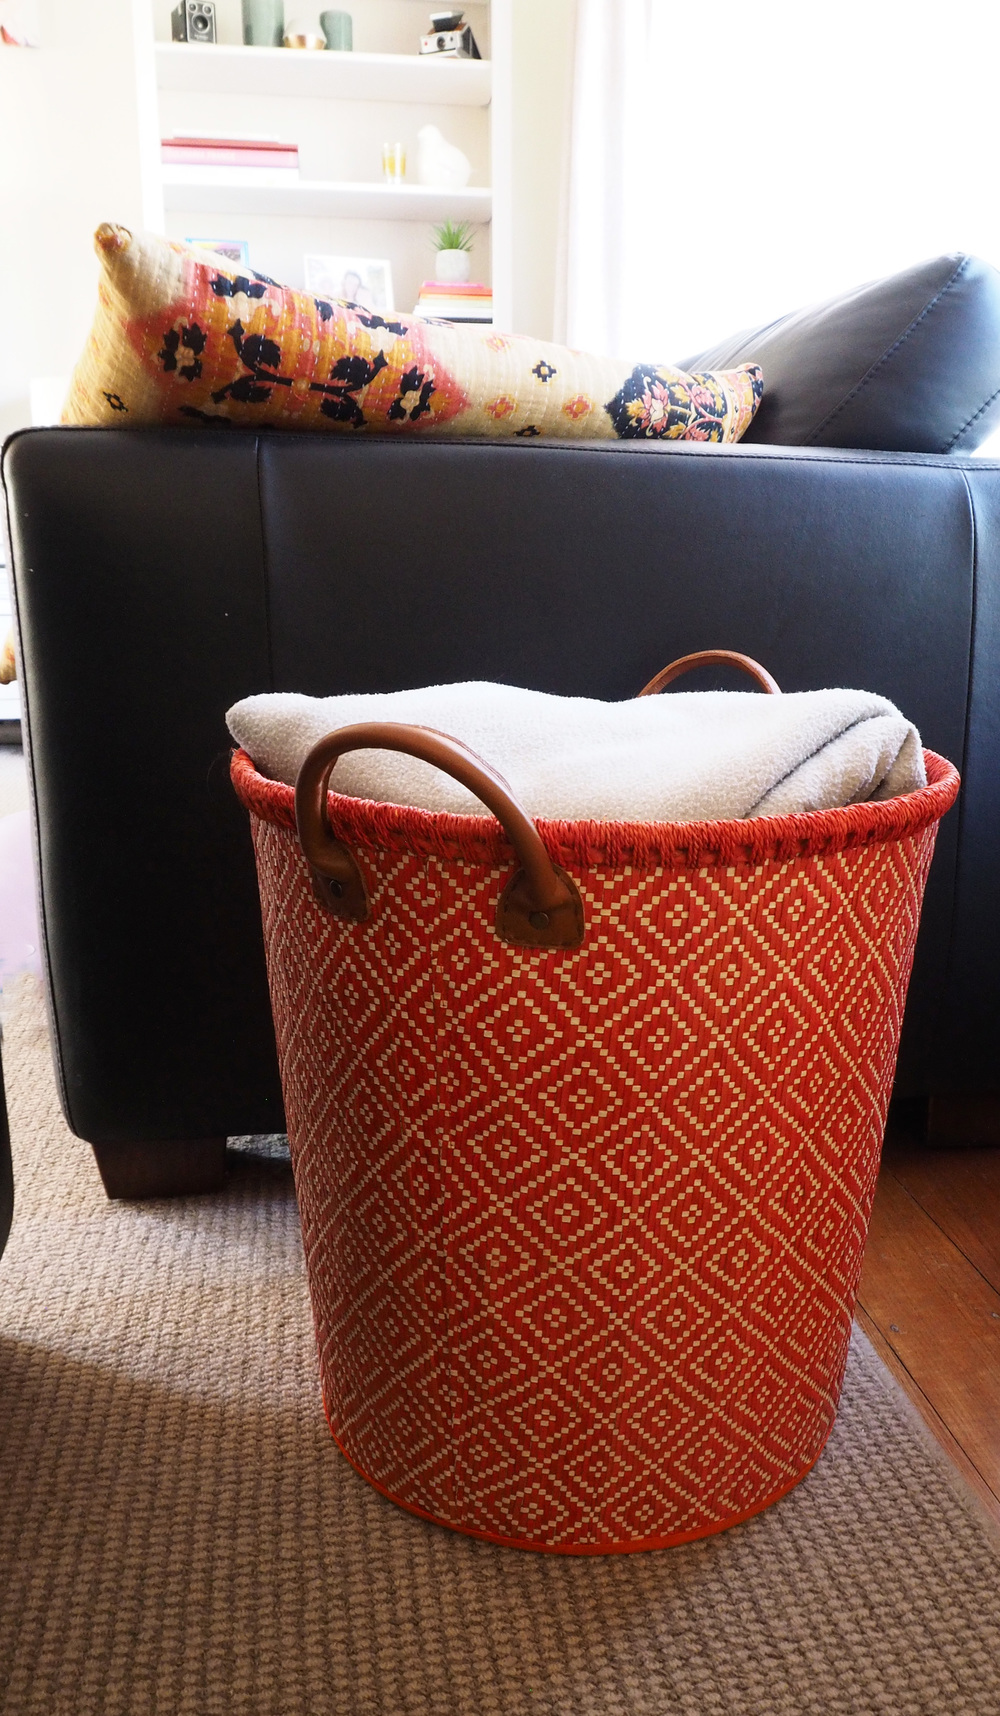 Tall cylindrical baskets are the perfect storage solution for quick and easy pack-ups, and can really hold a lot inside them